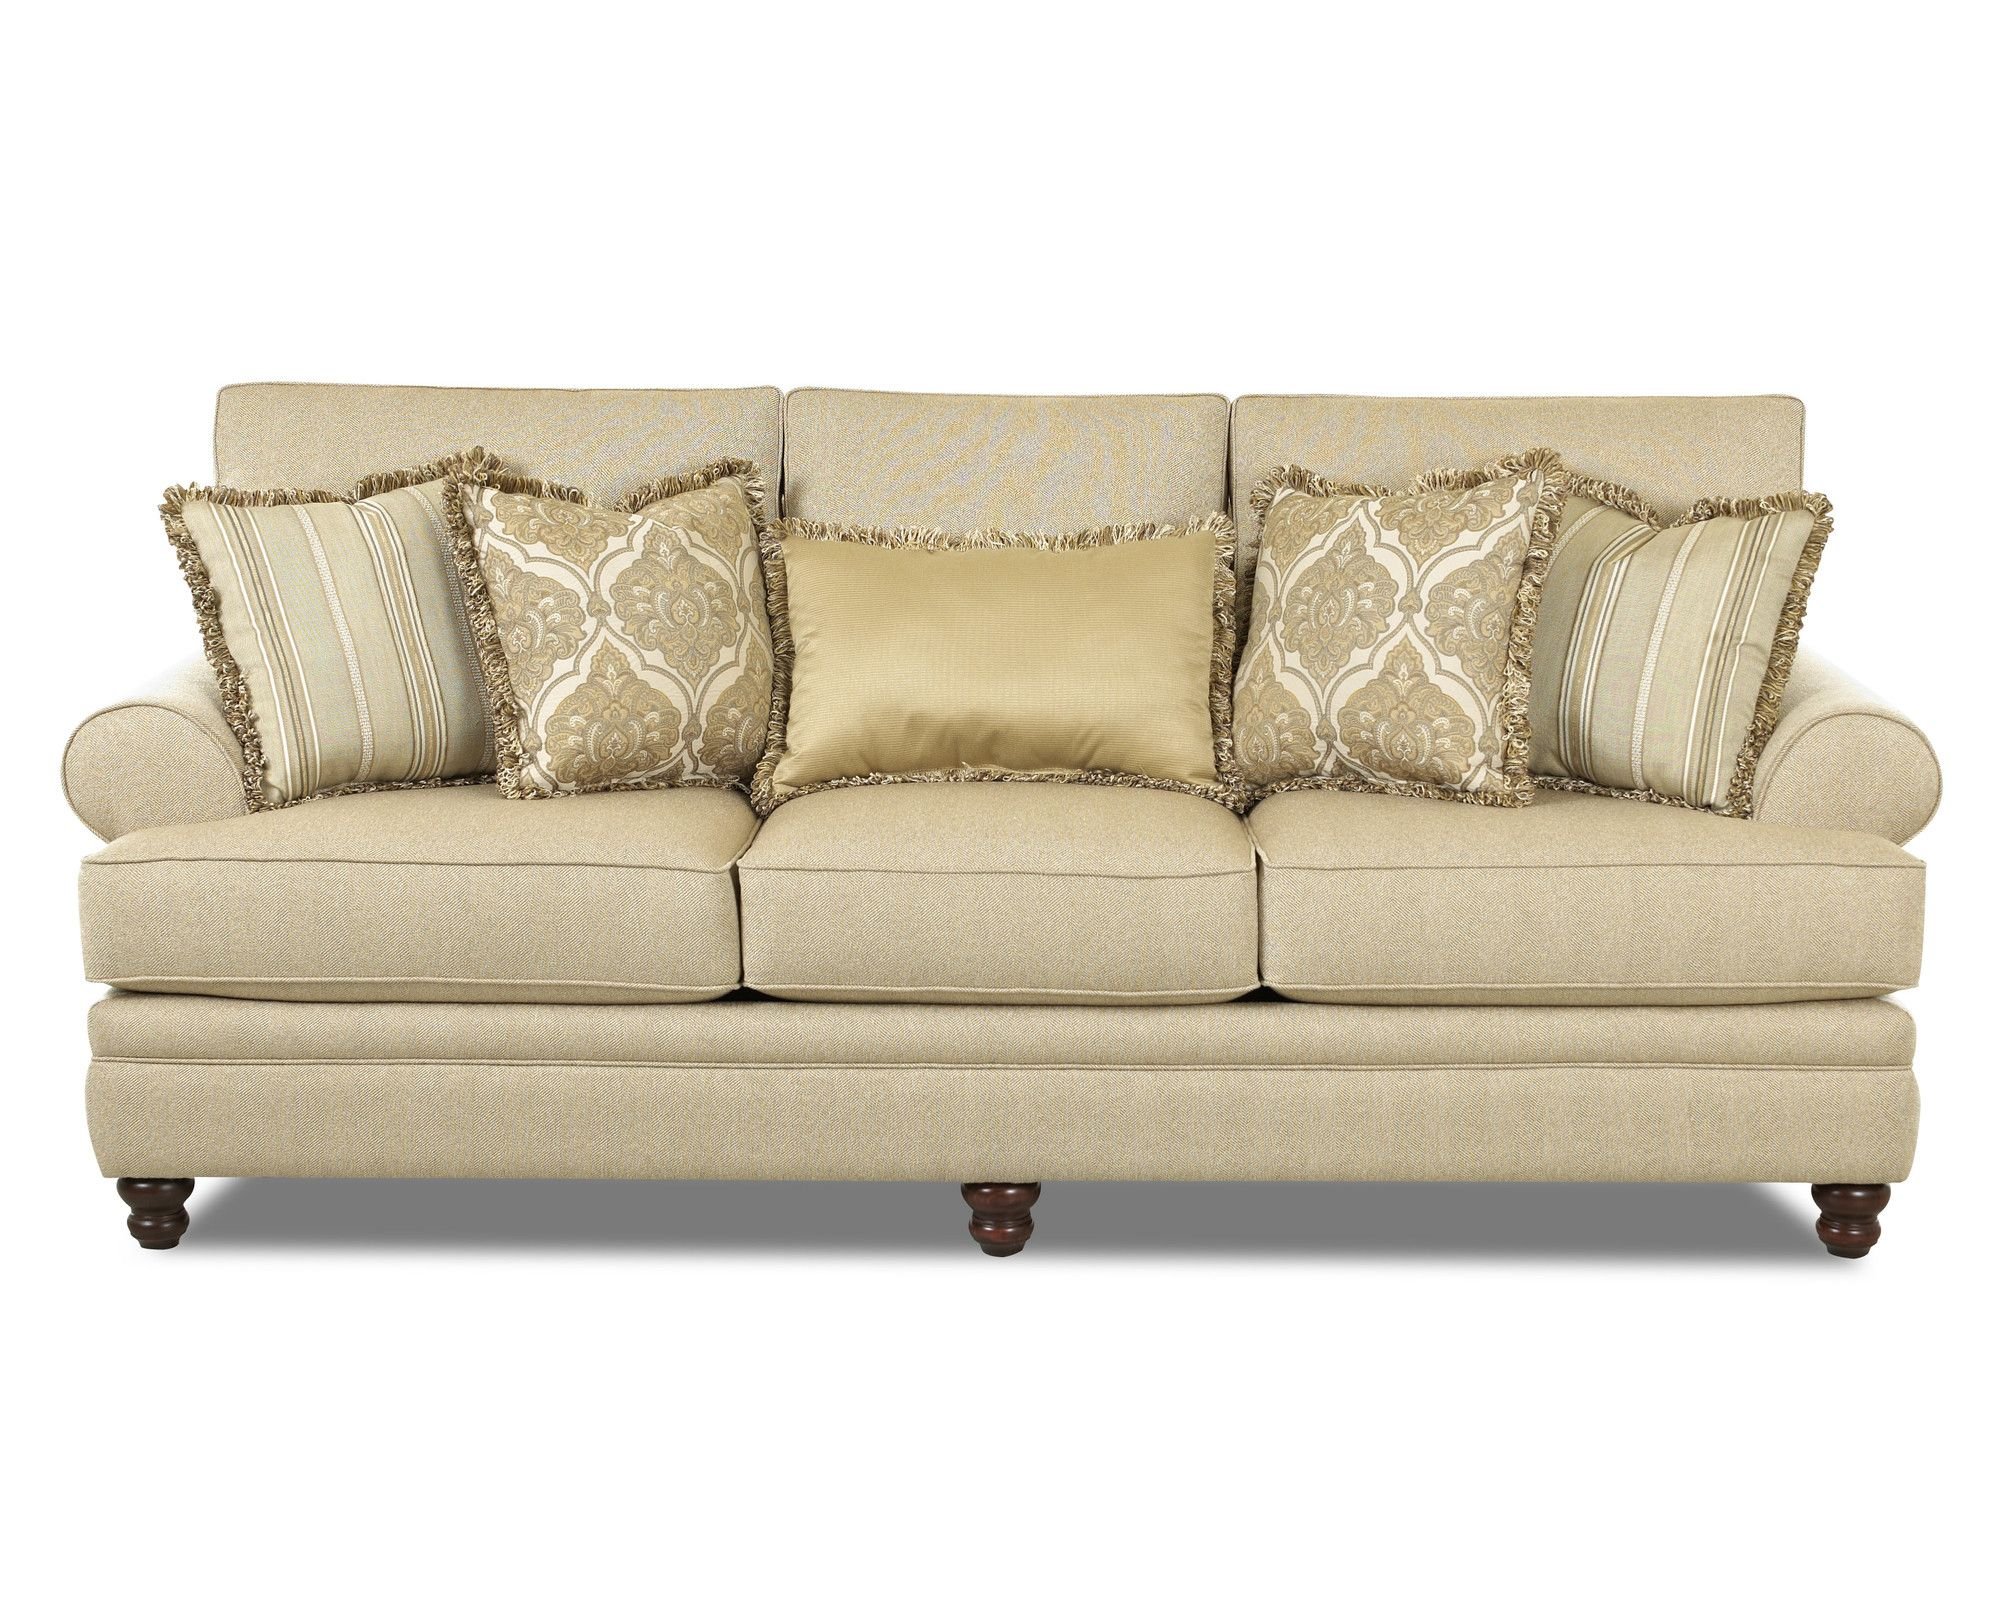 Klaussner Furniture Darcy Sofa Reviews Wayfair Furniture